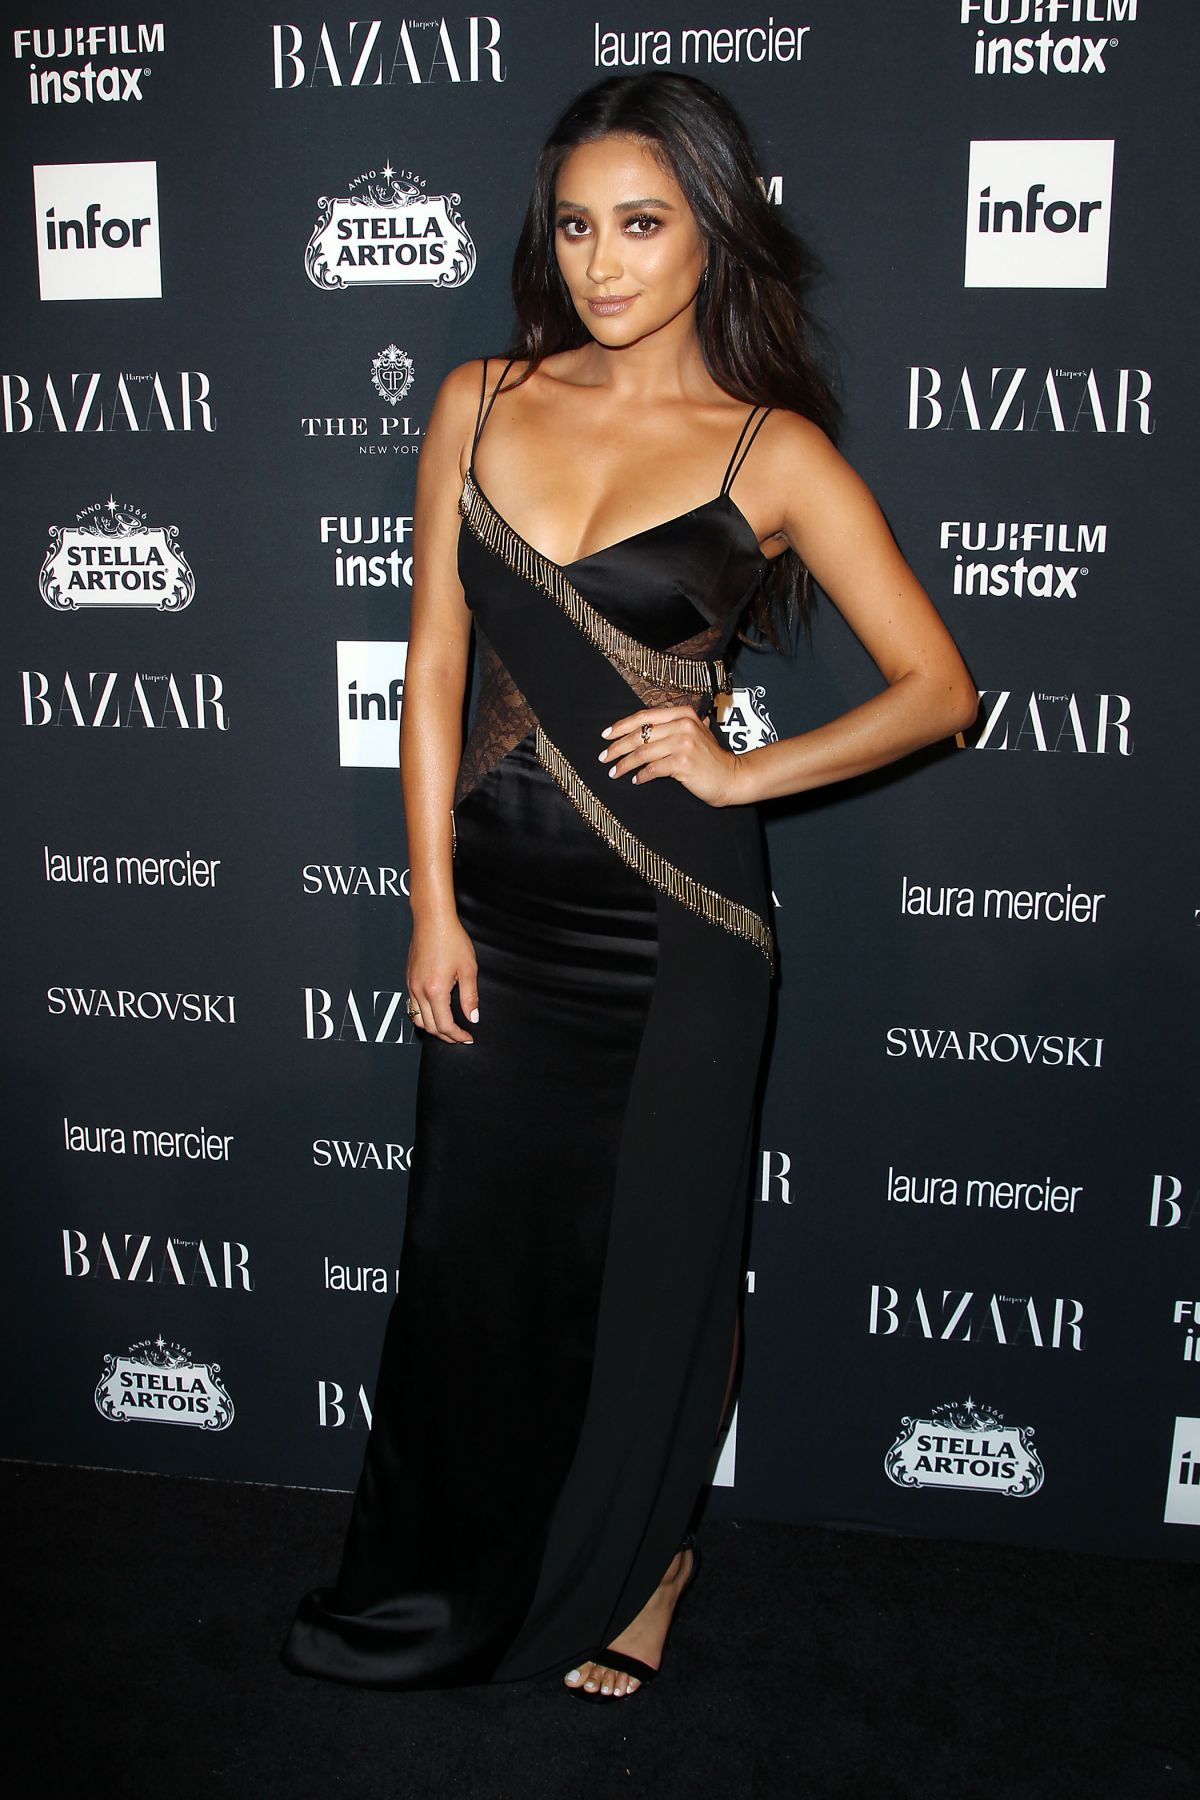 Shay Mitchell at the Harper's Bazaar ICONS party at New York Fashion Week